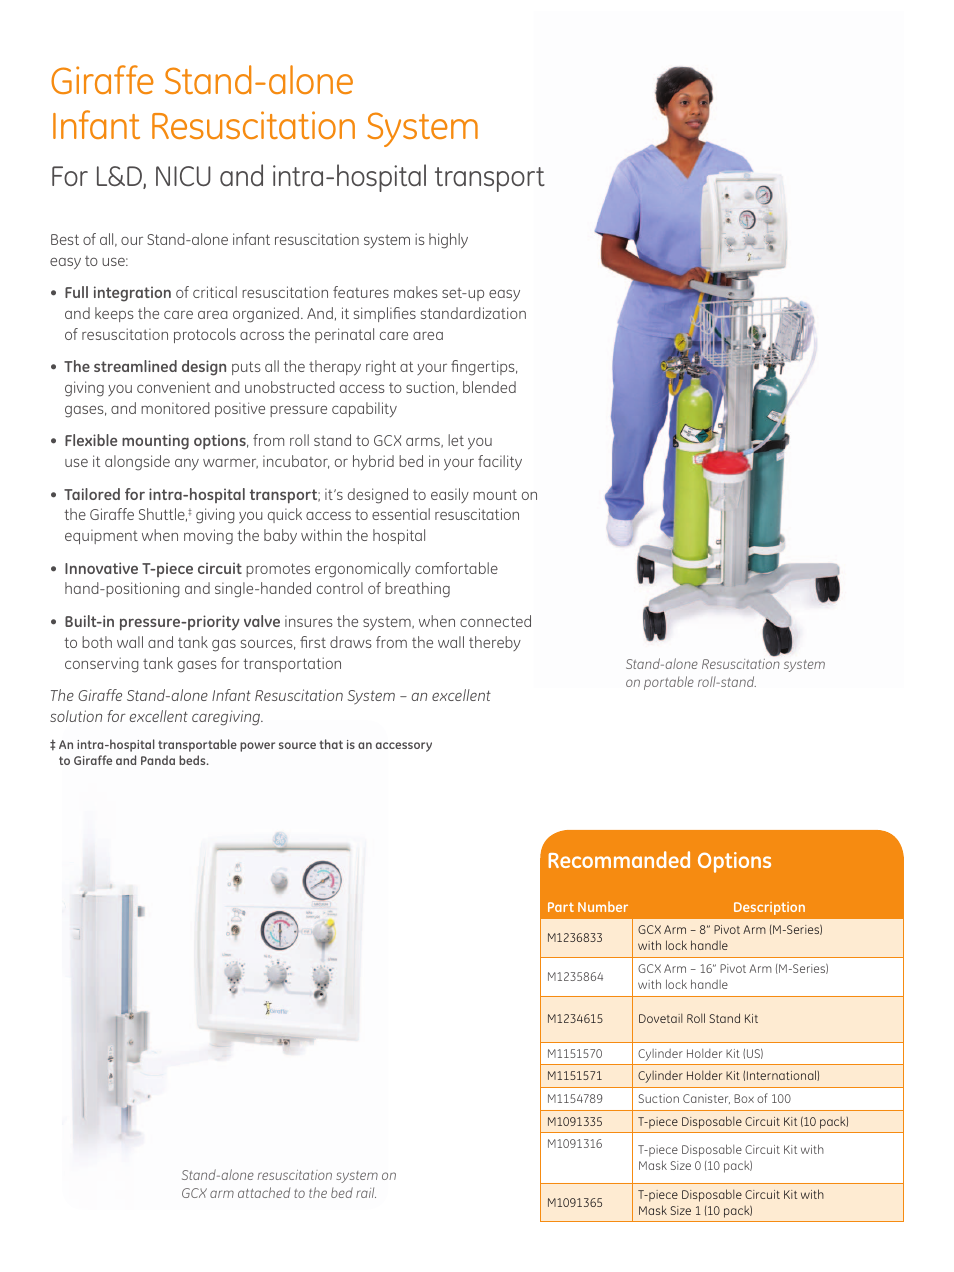 ... resuscitation system, For l&d, nicu and intra-hospital transport,  Recommanded options | GE Healthcare Stand-alone Resuscitation System User  Manual ...